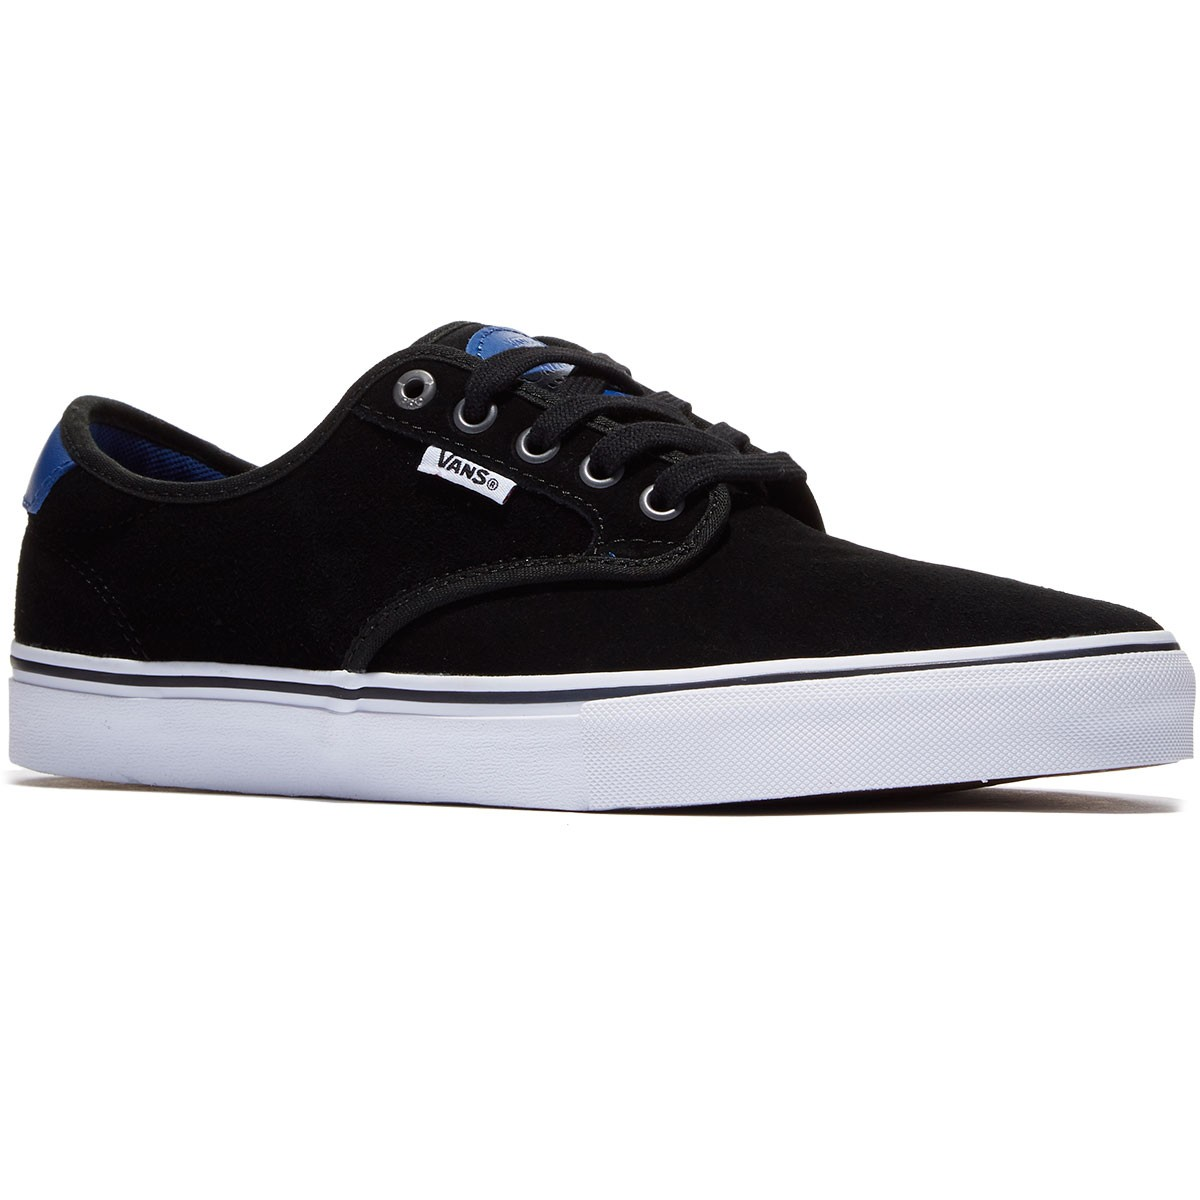 Vans Chima Ferguson Pro Shoes - Black/True Black